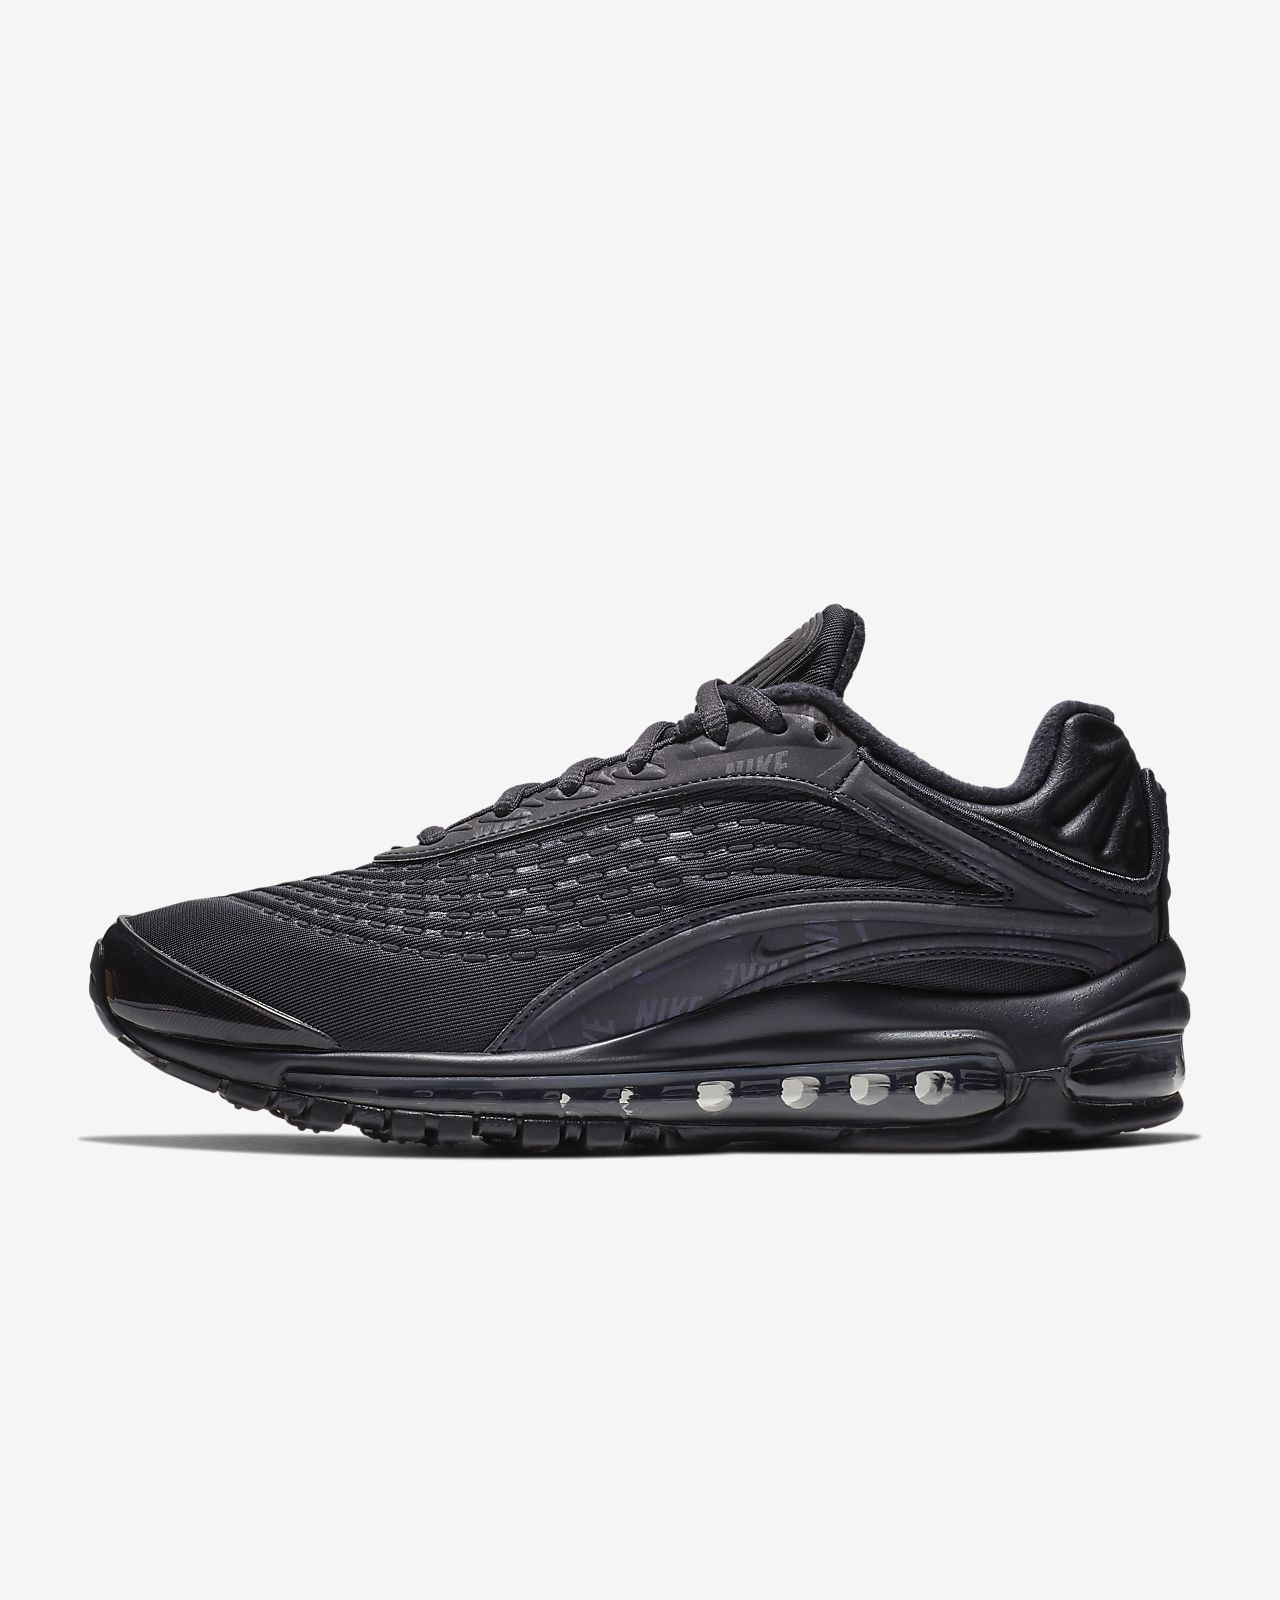 best service a9f77 5ba1b ... Sapatilhas Nike Air Max Deluxe SE para mulher